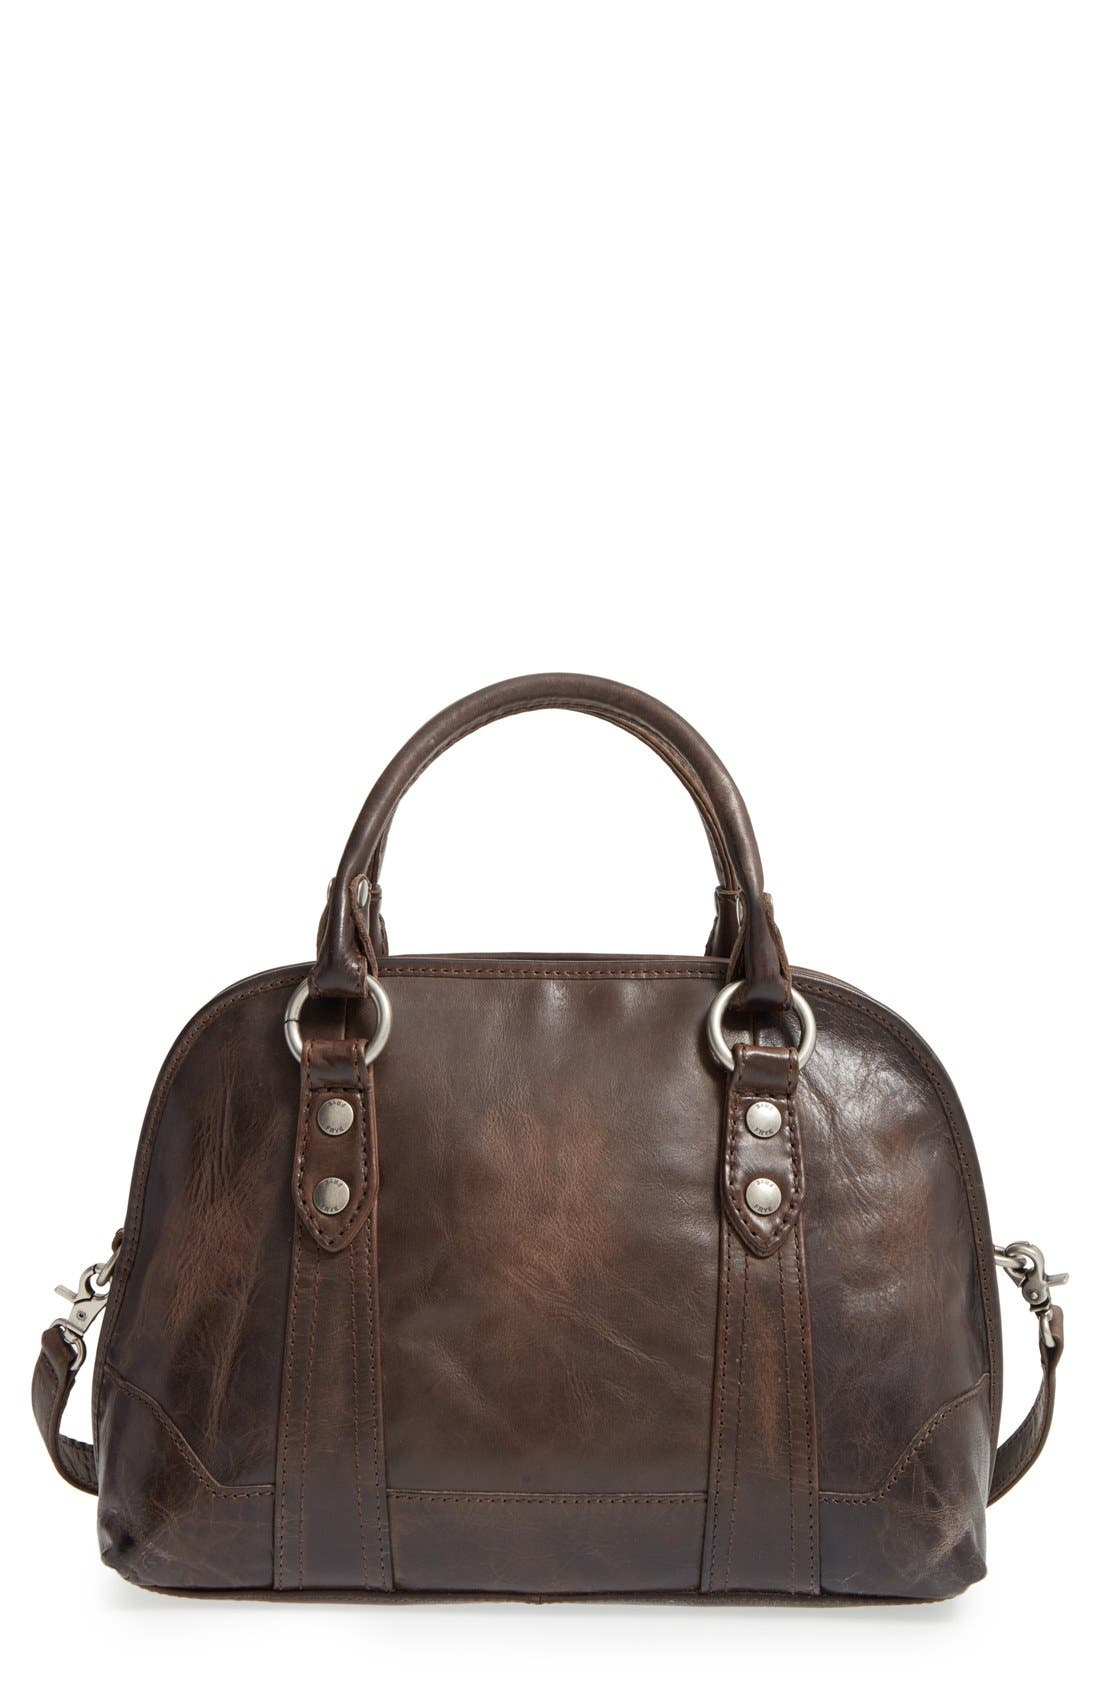 FRYE 'Melissa' Domed Leather Satchel